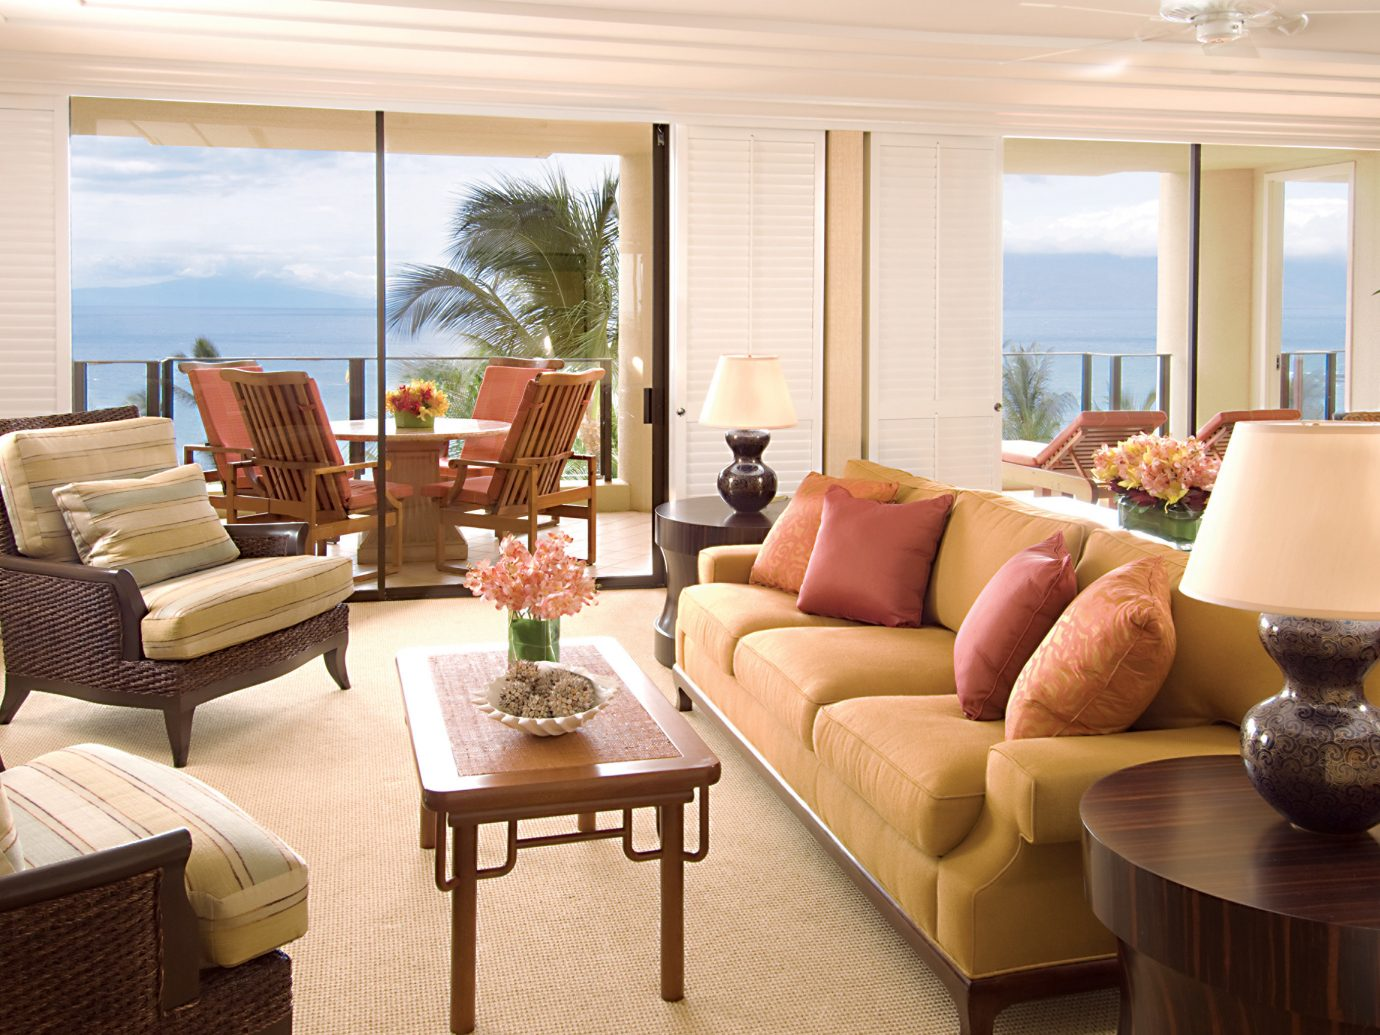 Balcony Beach Boutique Hotels Hotels Island Living Luxury Travel Scenic views Tropical indoor window floor table room sofa wall living room property home estate glass Suite interior design real estate condominium Villa nice furniture cottage apartment window covering dining room flat area